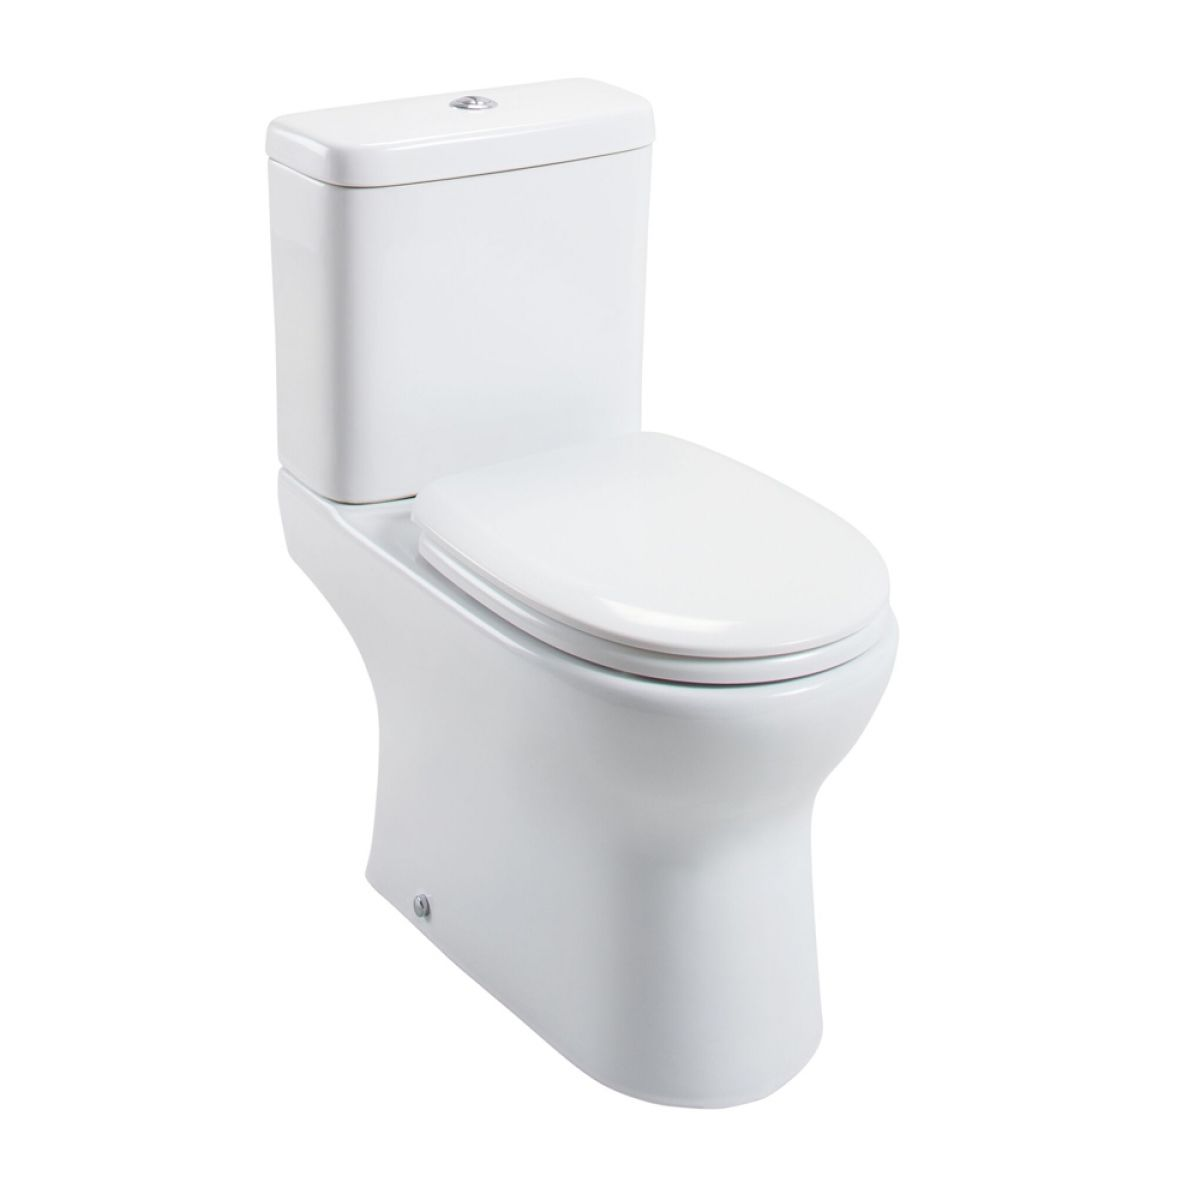 Cassellie Breeze Rimless Close Coupled Toilet